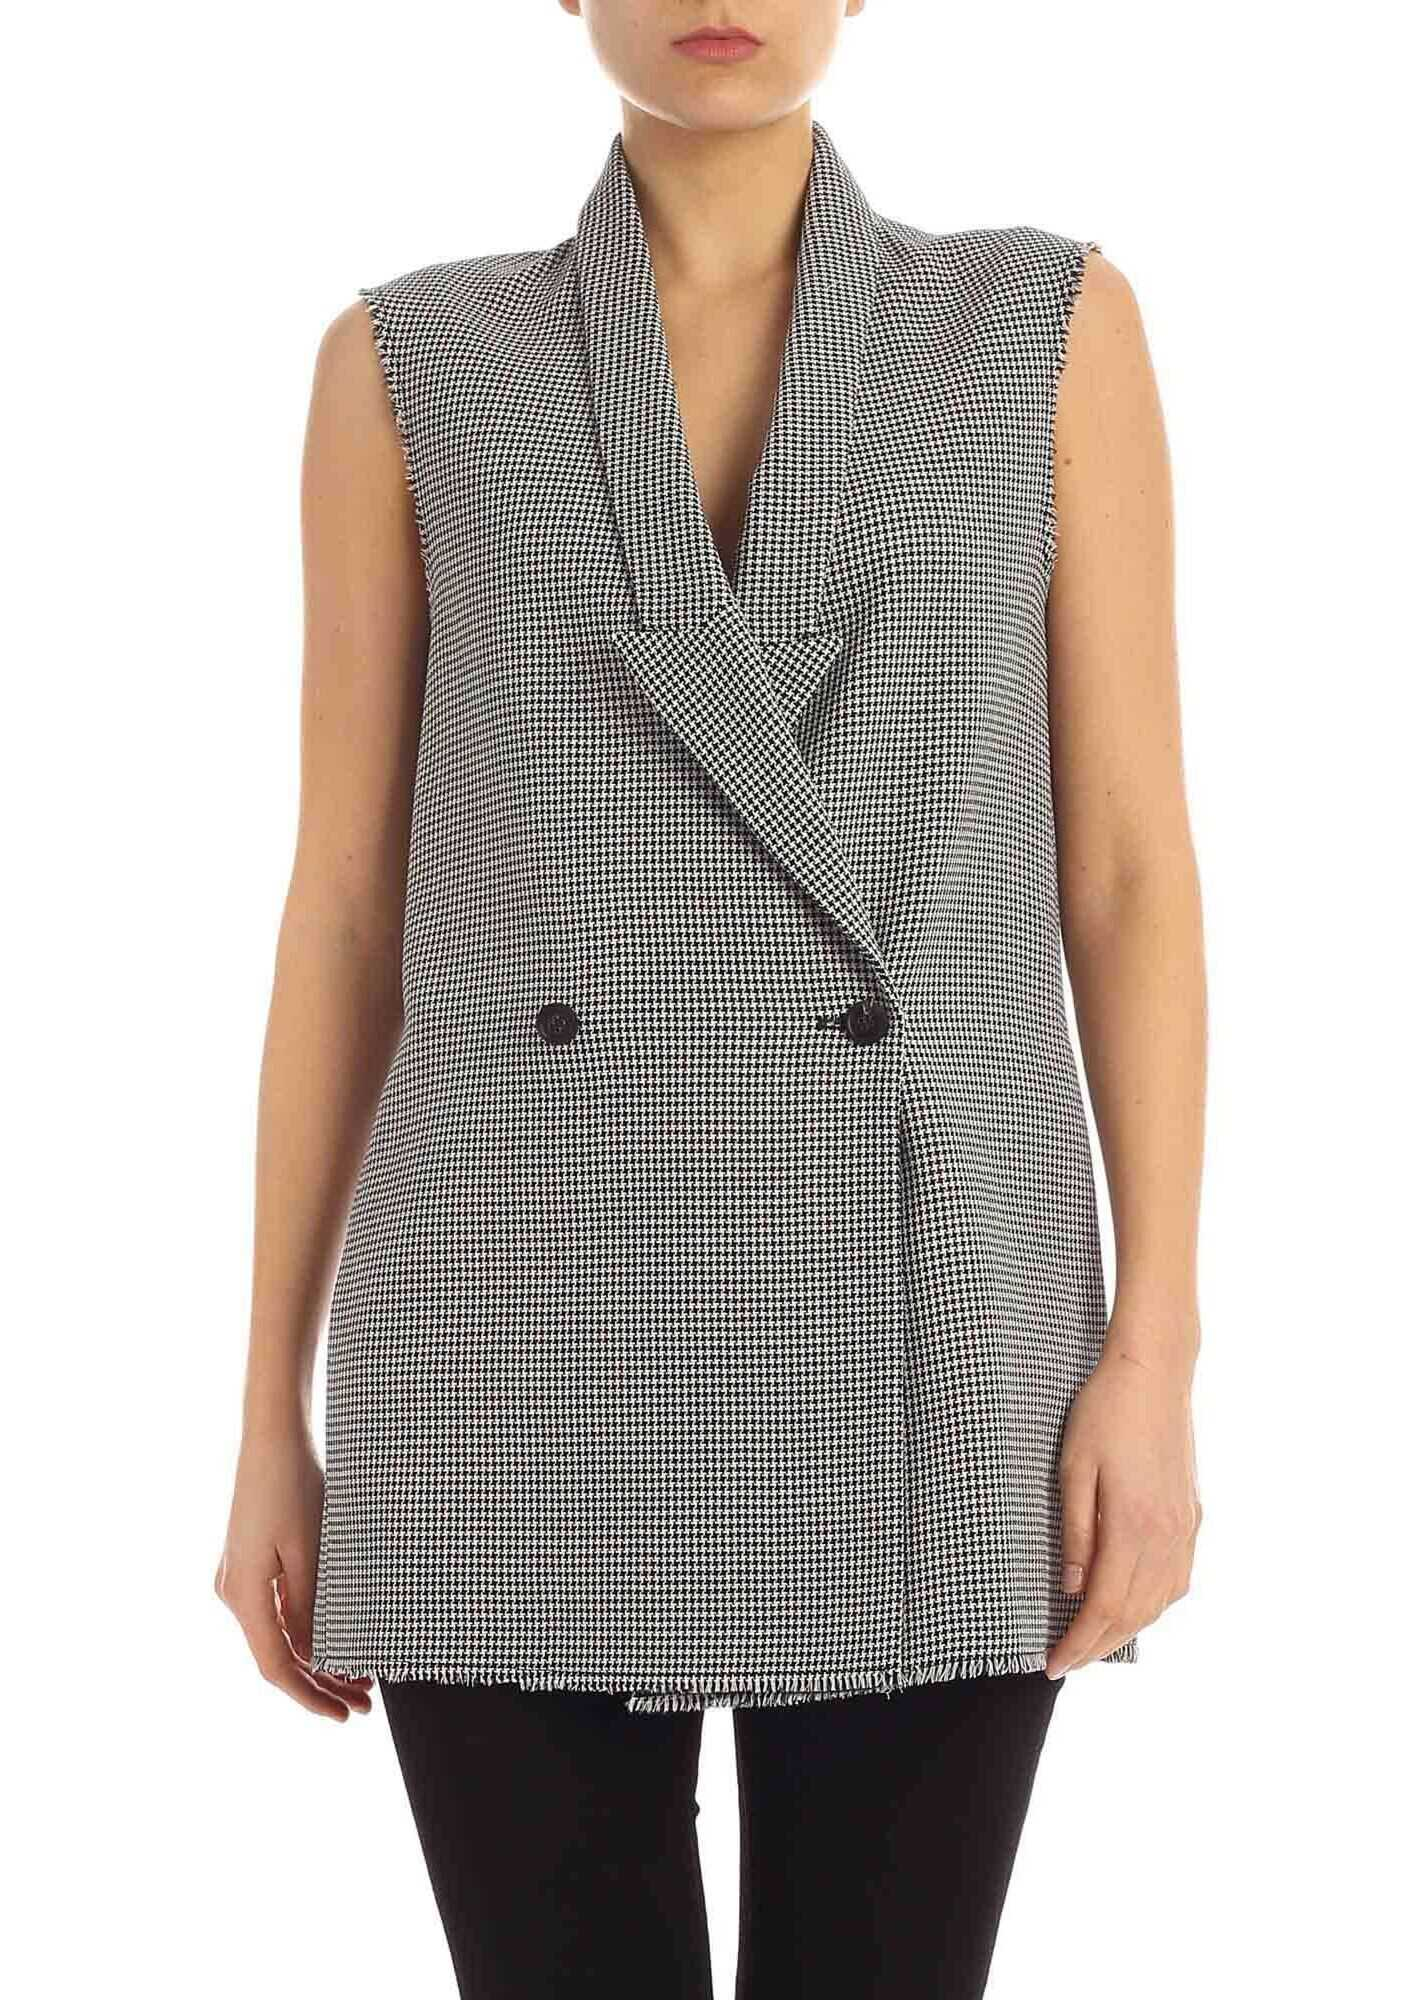 Jennifer Waistcoat In Black And White thumbnail